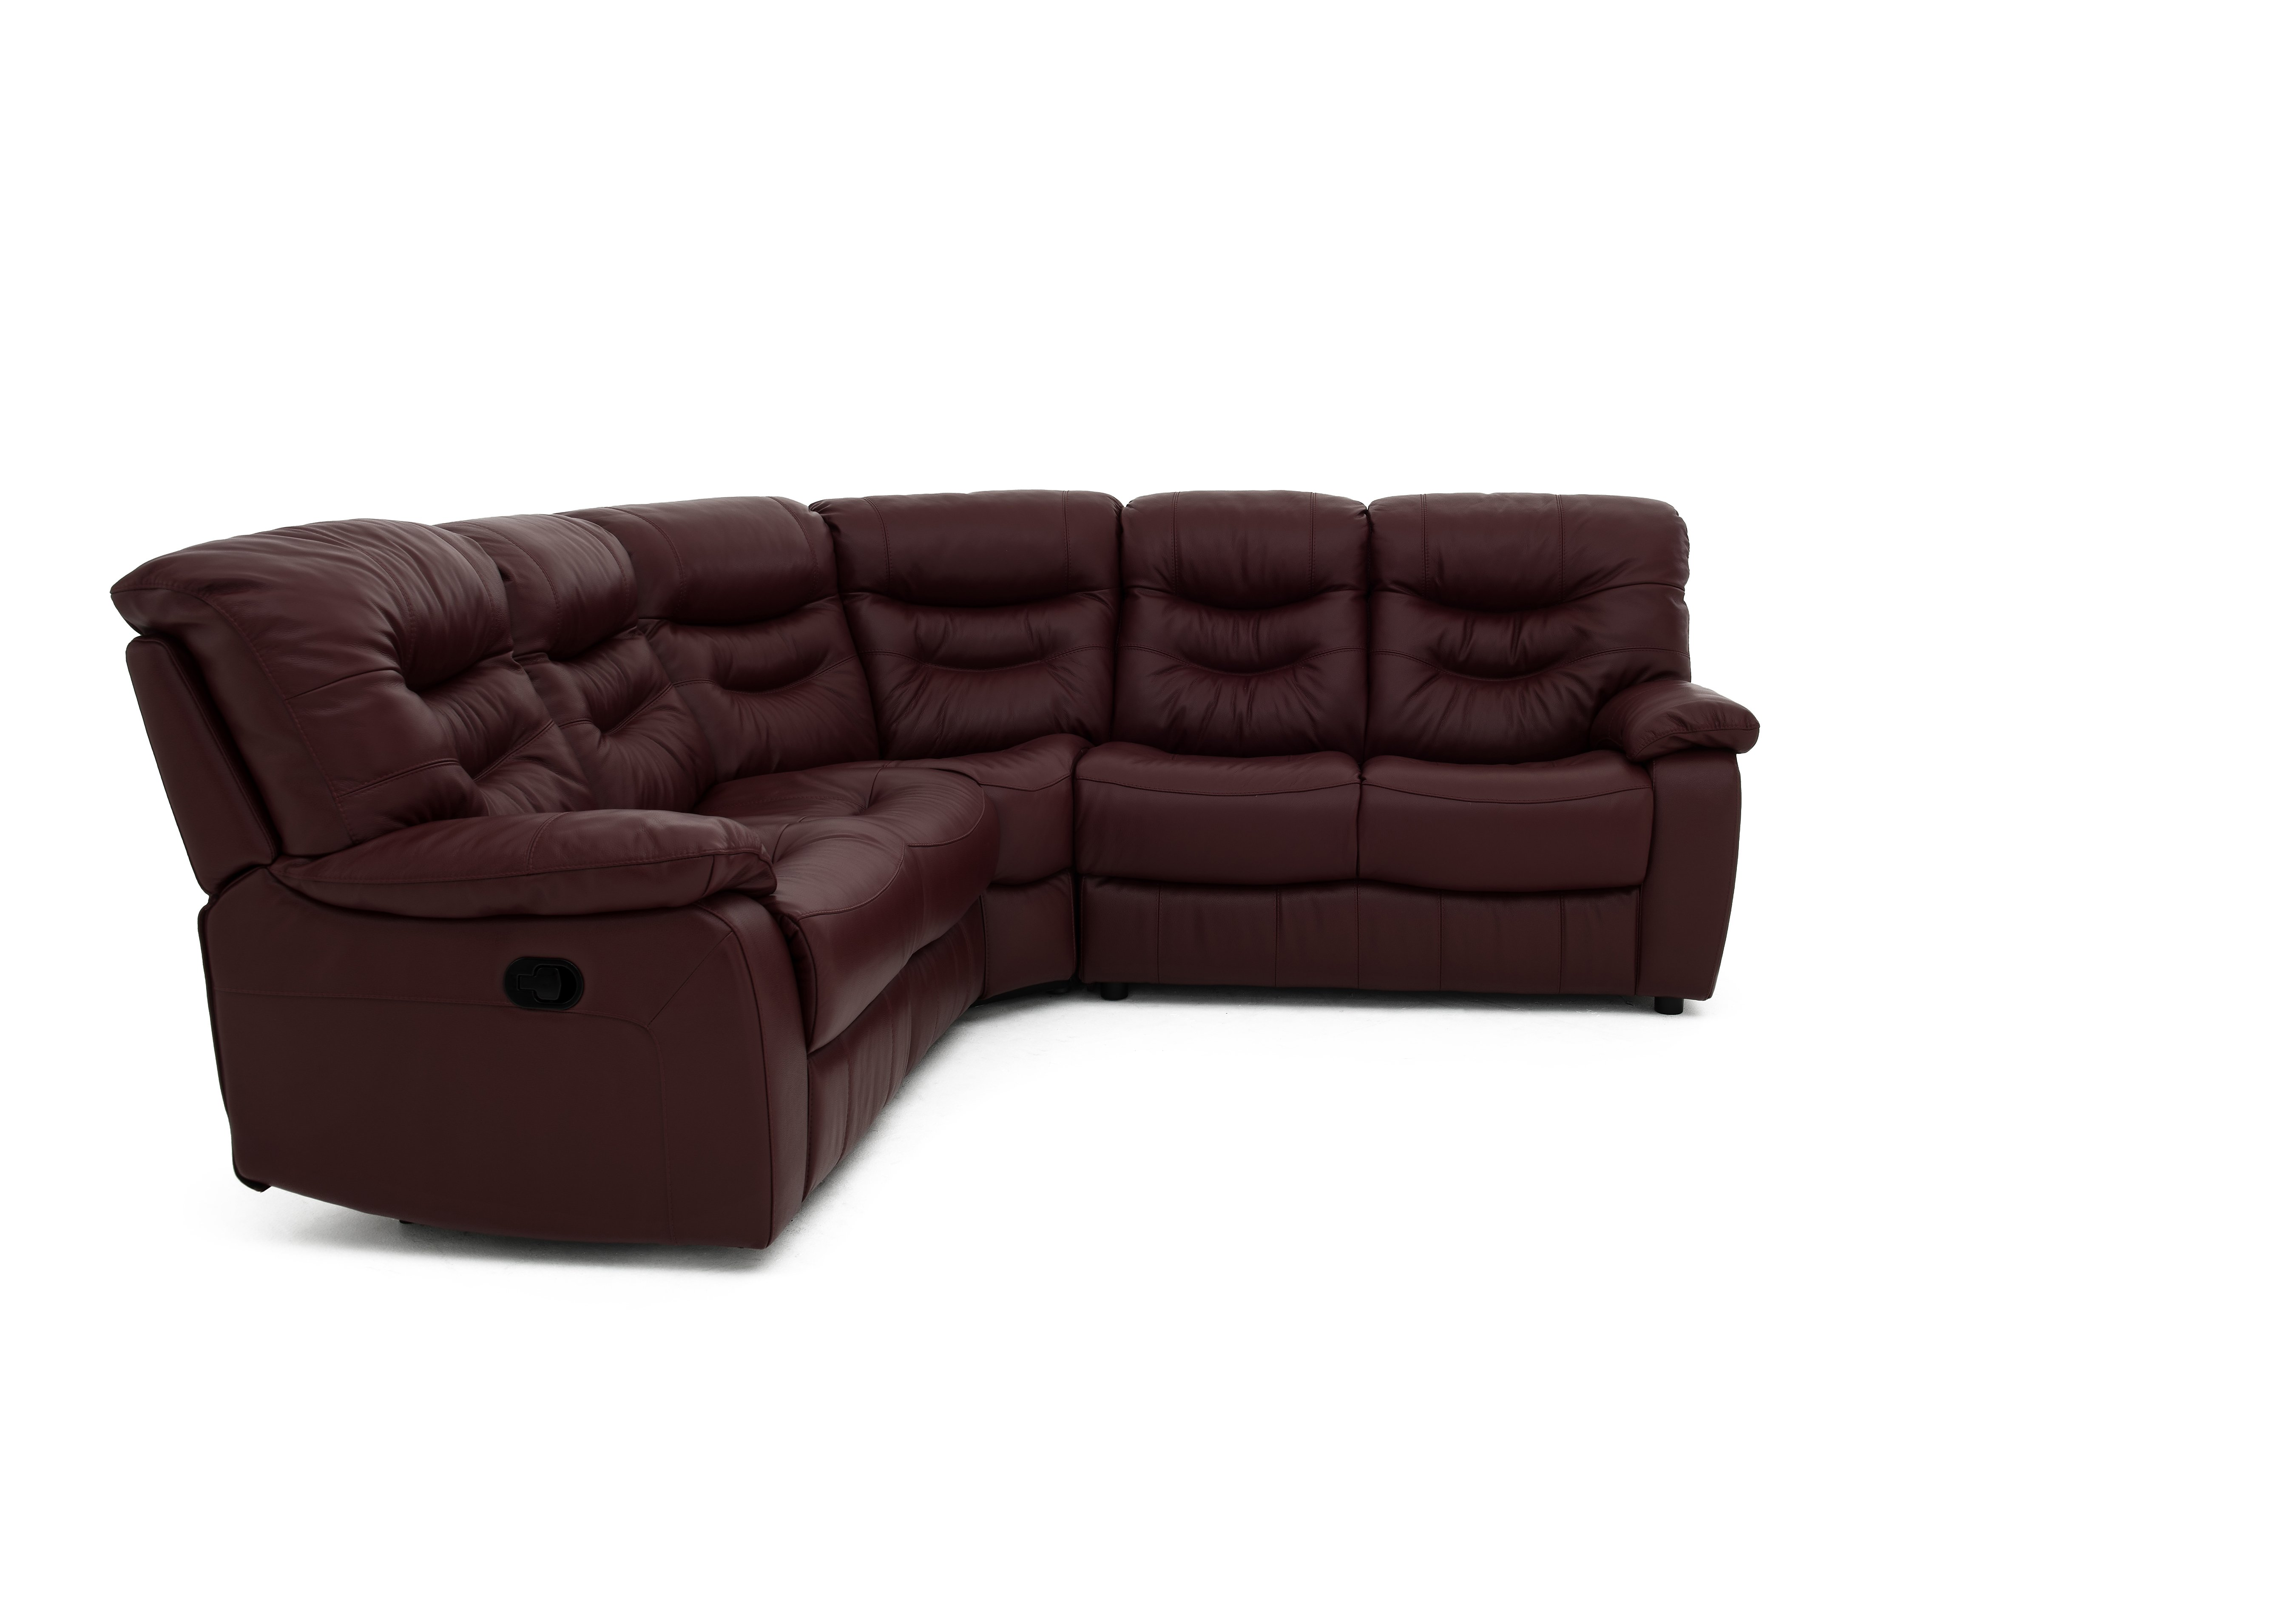 Relax Station Cozy Leather Recliner Corner Sofa World Of Leather